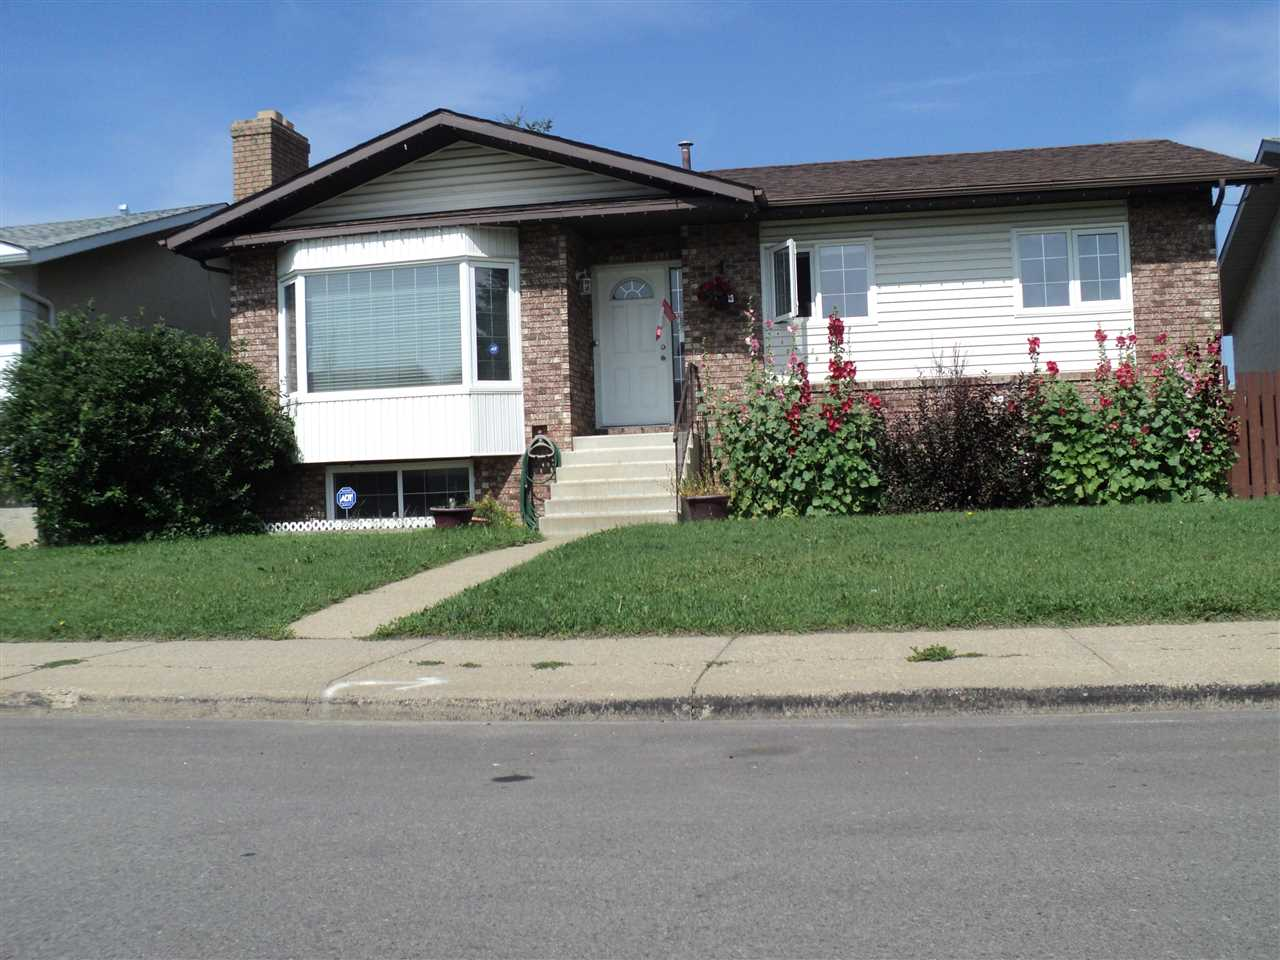 MLS® listing #E4168386 for sale located at 4608 26 Avenue Avenue